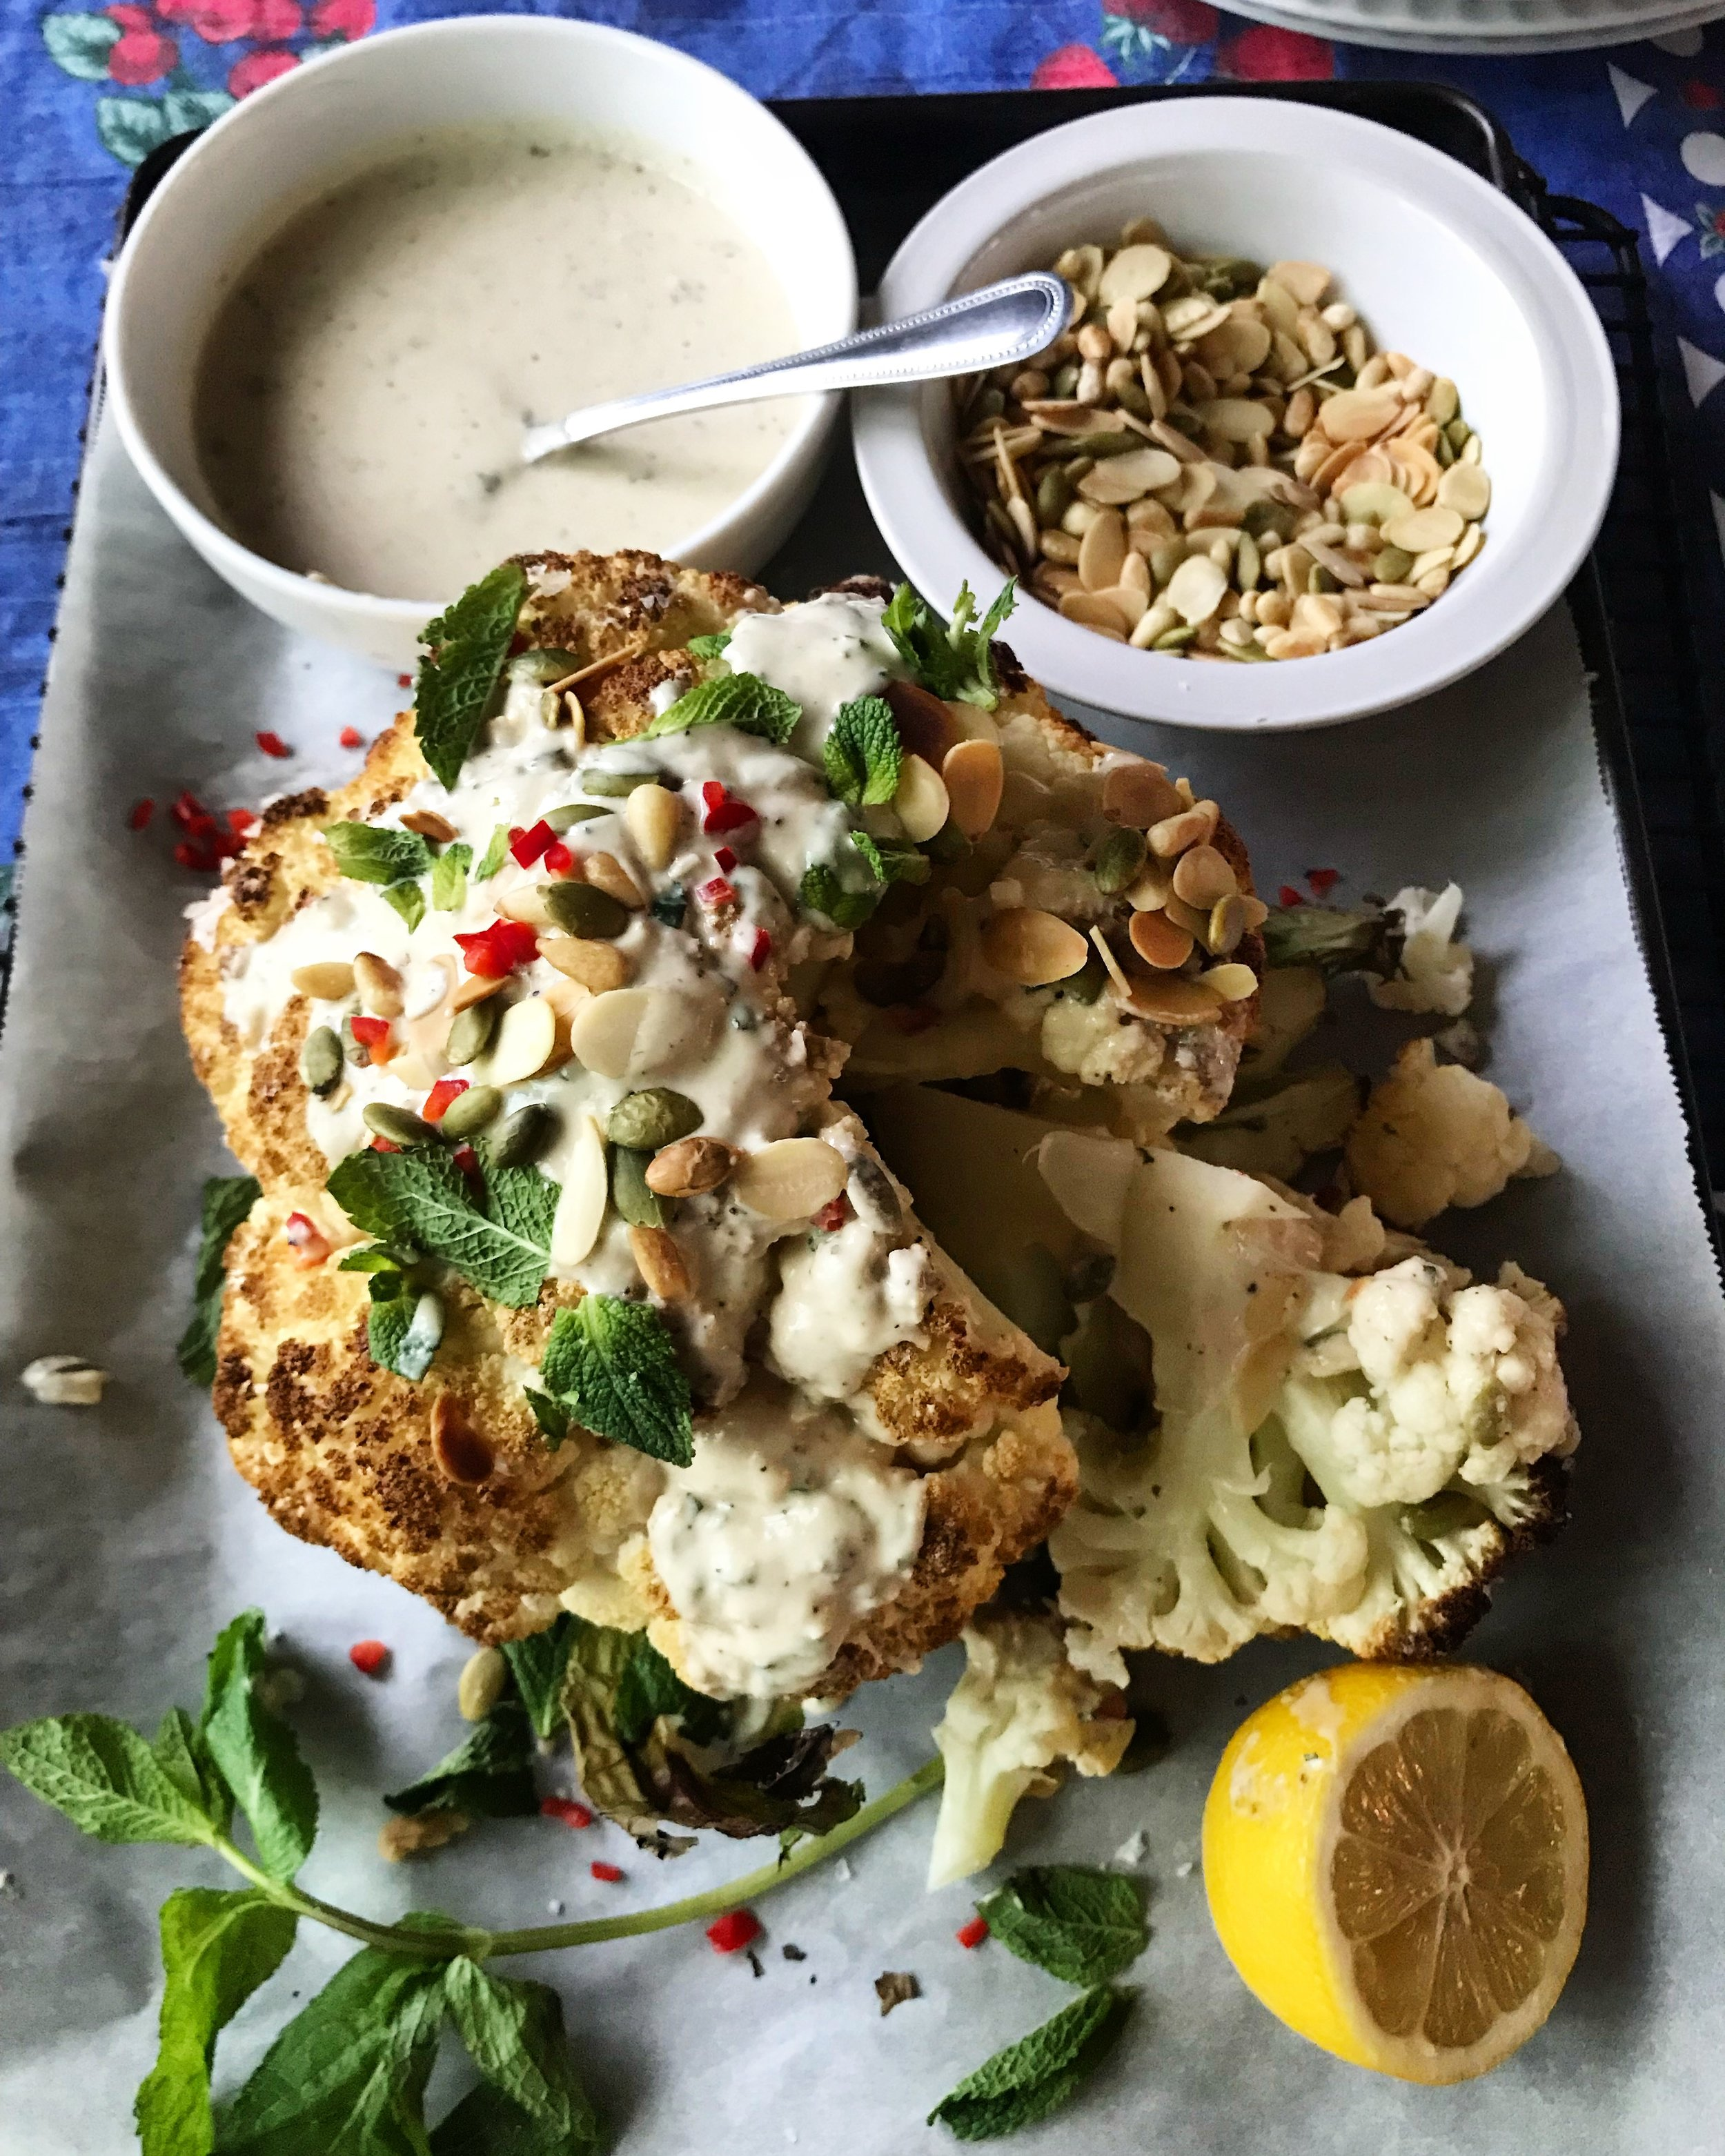 HERE IS WHAT YOU NEED: - 1 large head cauliflowerolive oilsaltpepperza'atar 1/2 cup good quality tahini1 large garlic clove, minced1 lemon - peel grated, juice squeezed1/4 cup water, or until tahini becomes smooth2 tablespoons chopped mintsunflower seeds, sliced almonds, pine nuts, sesame seeds (one kind or mix of few) - toasted